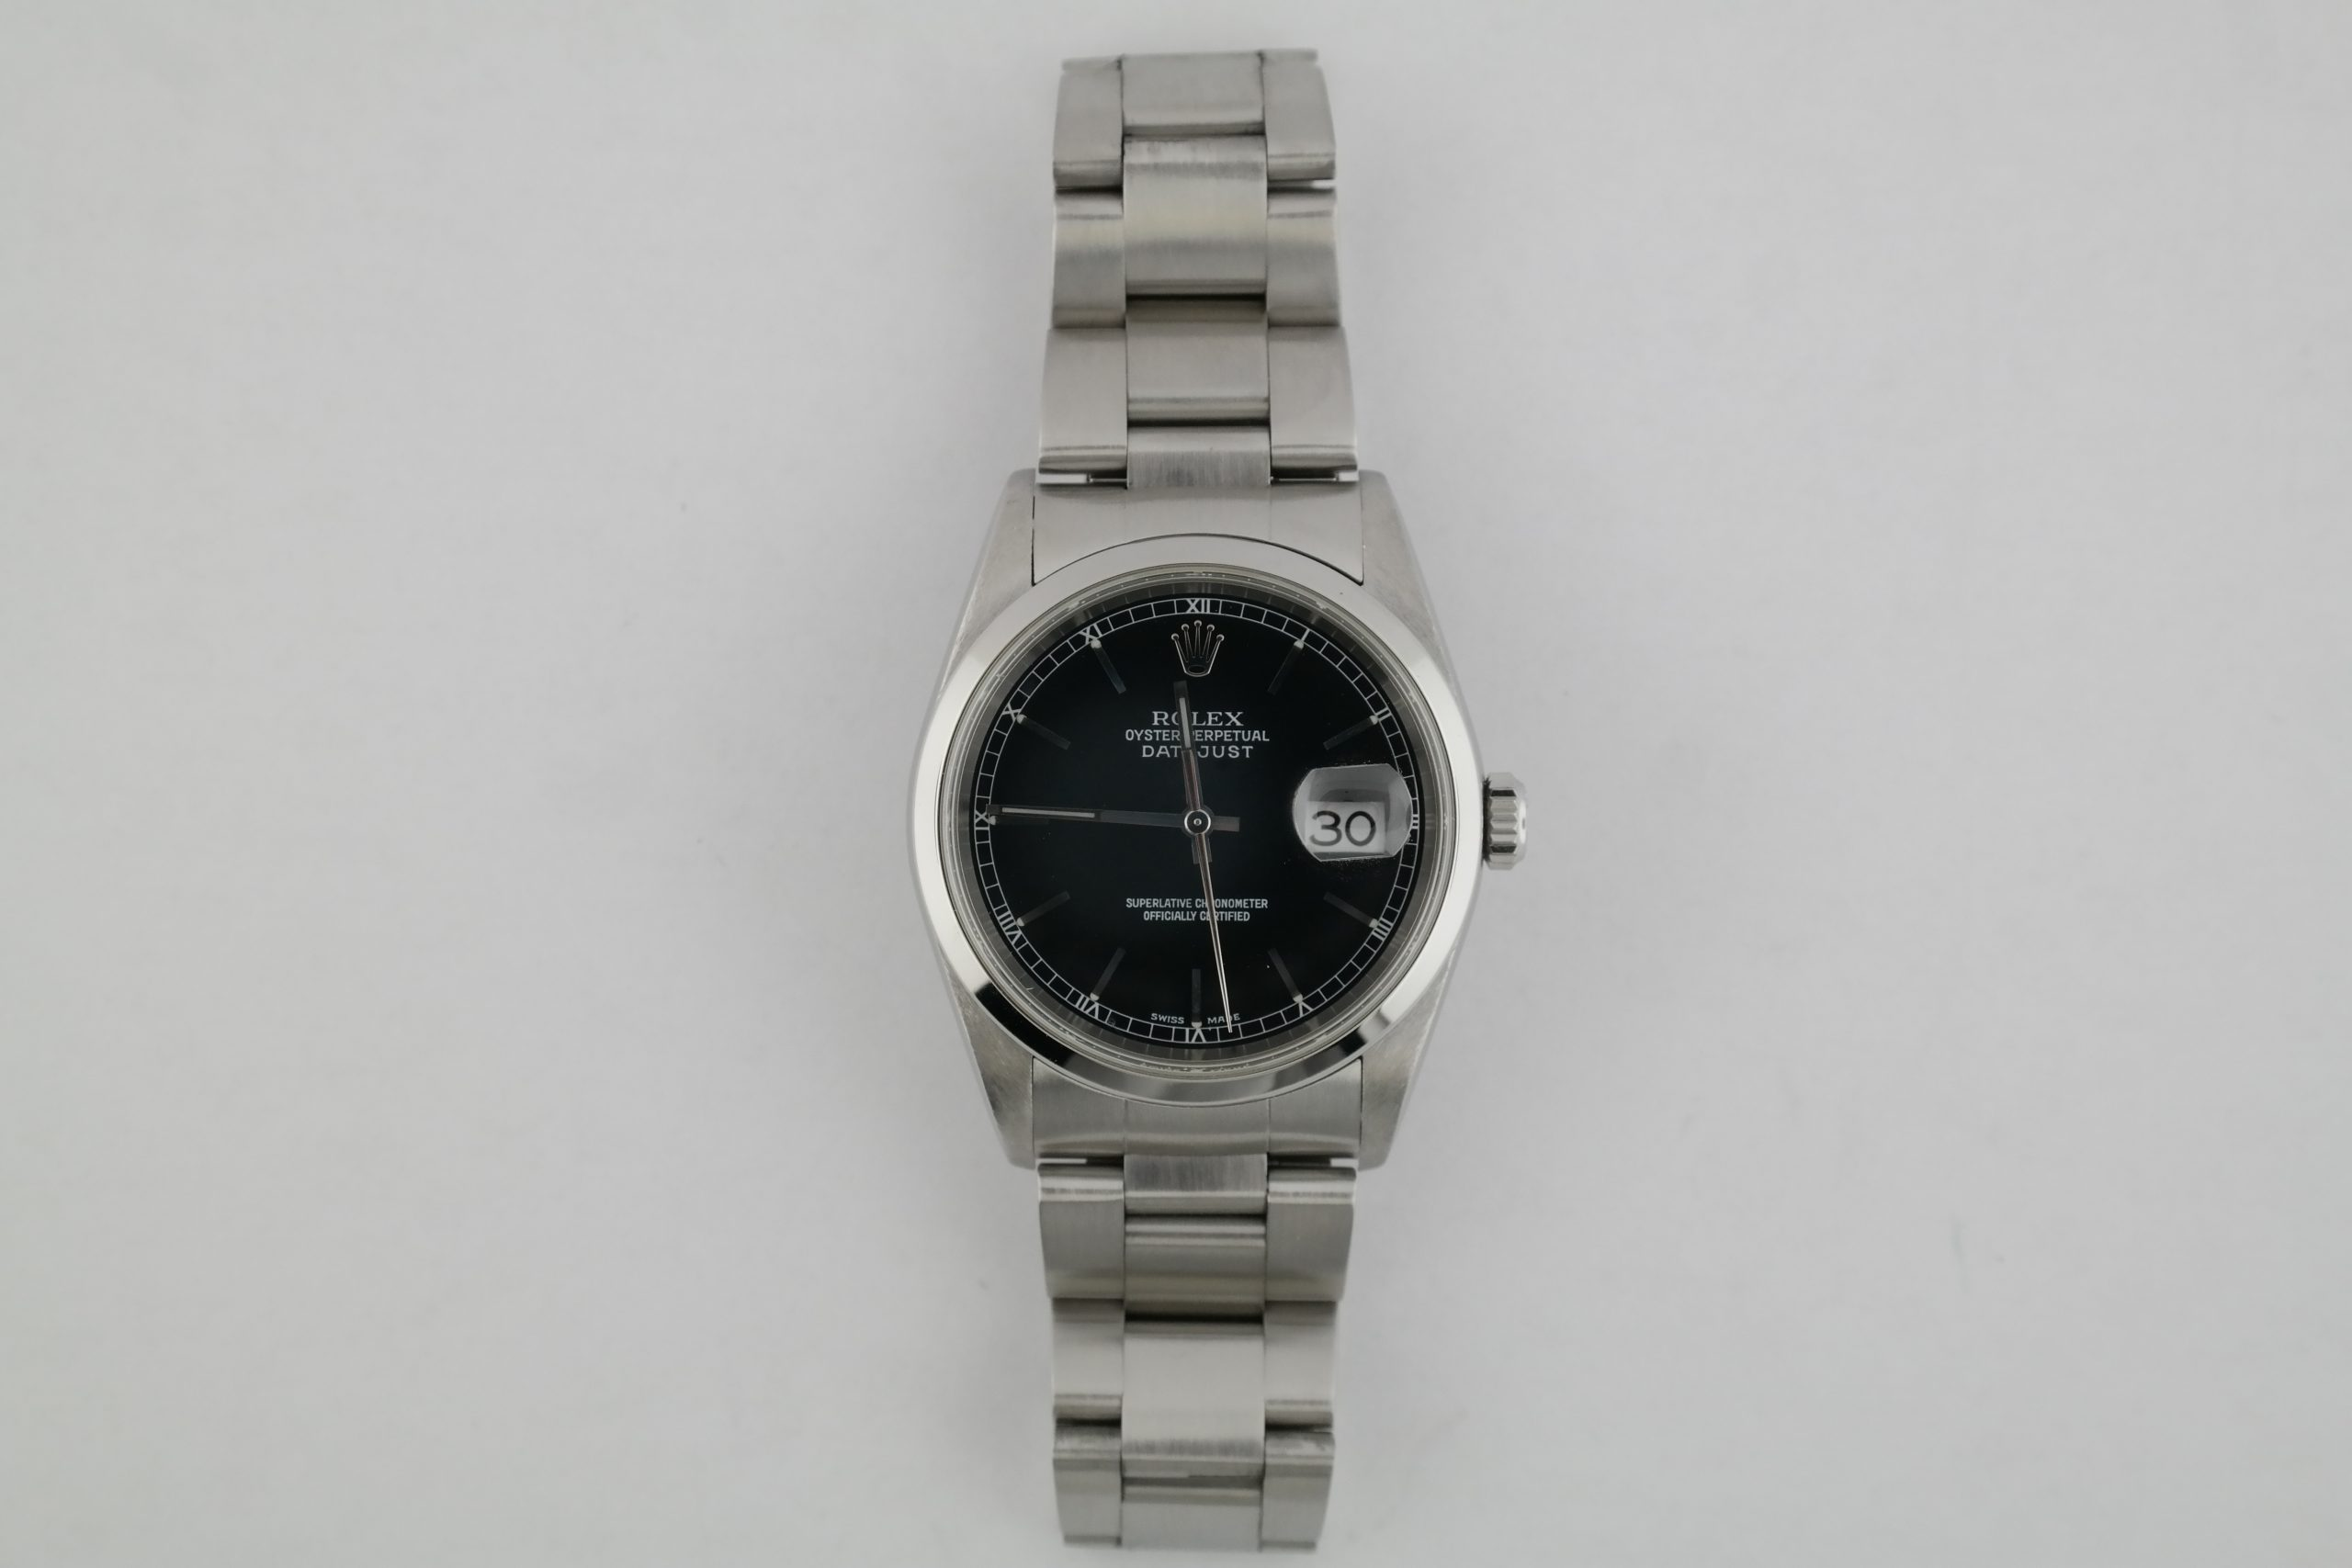 Rolex Datejust 16200 Black Dial Stainless Steel Smooth Bezel Oyster Band 2003